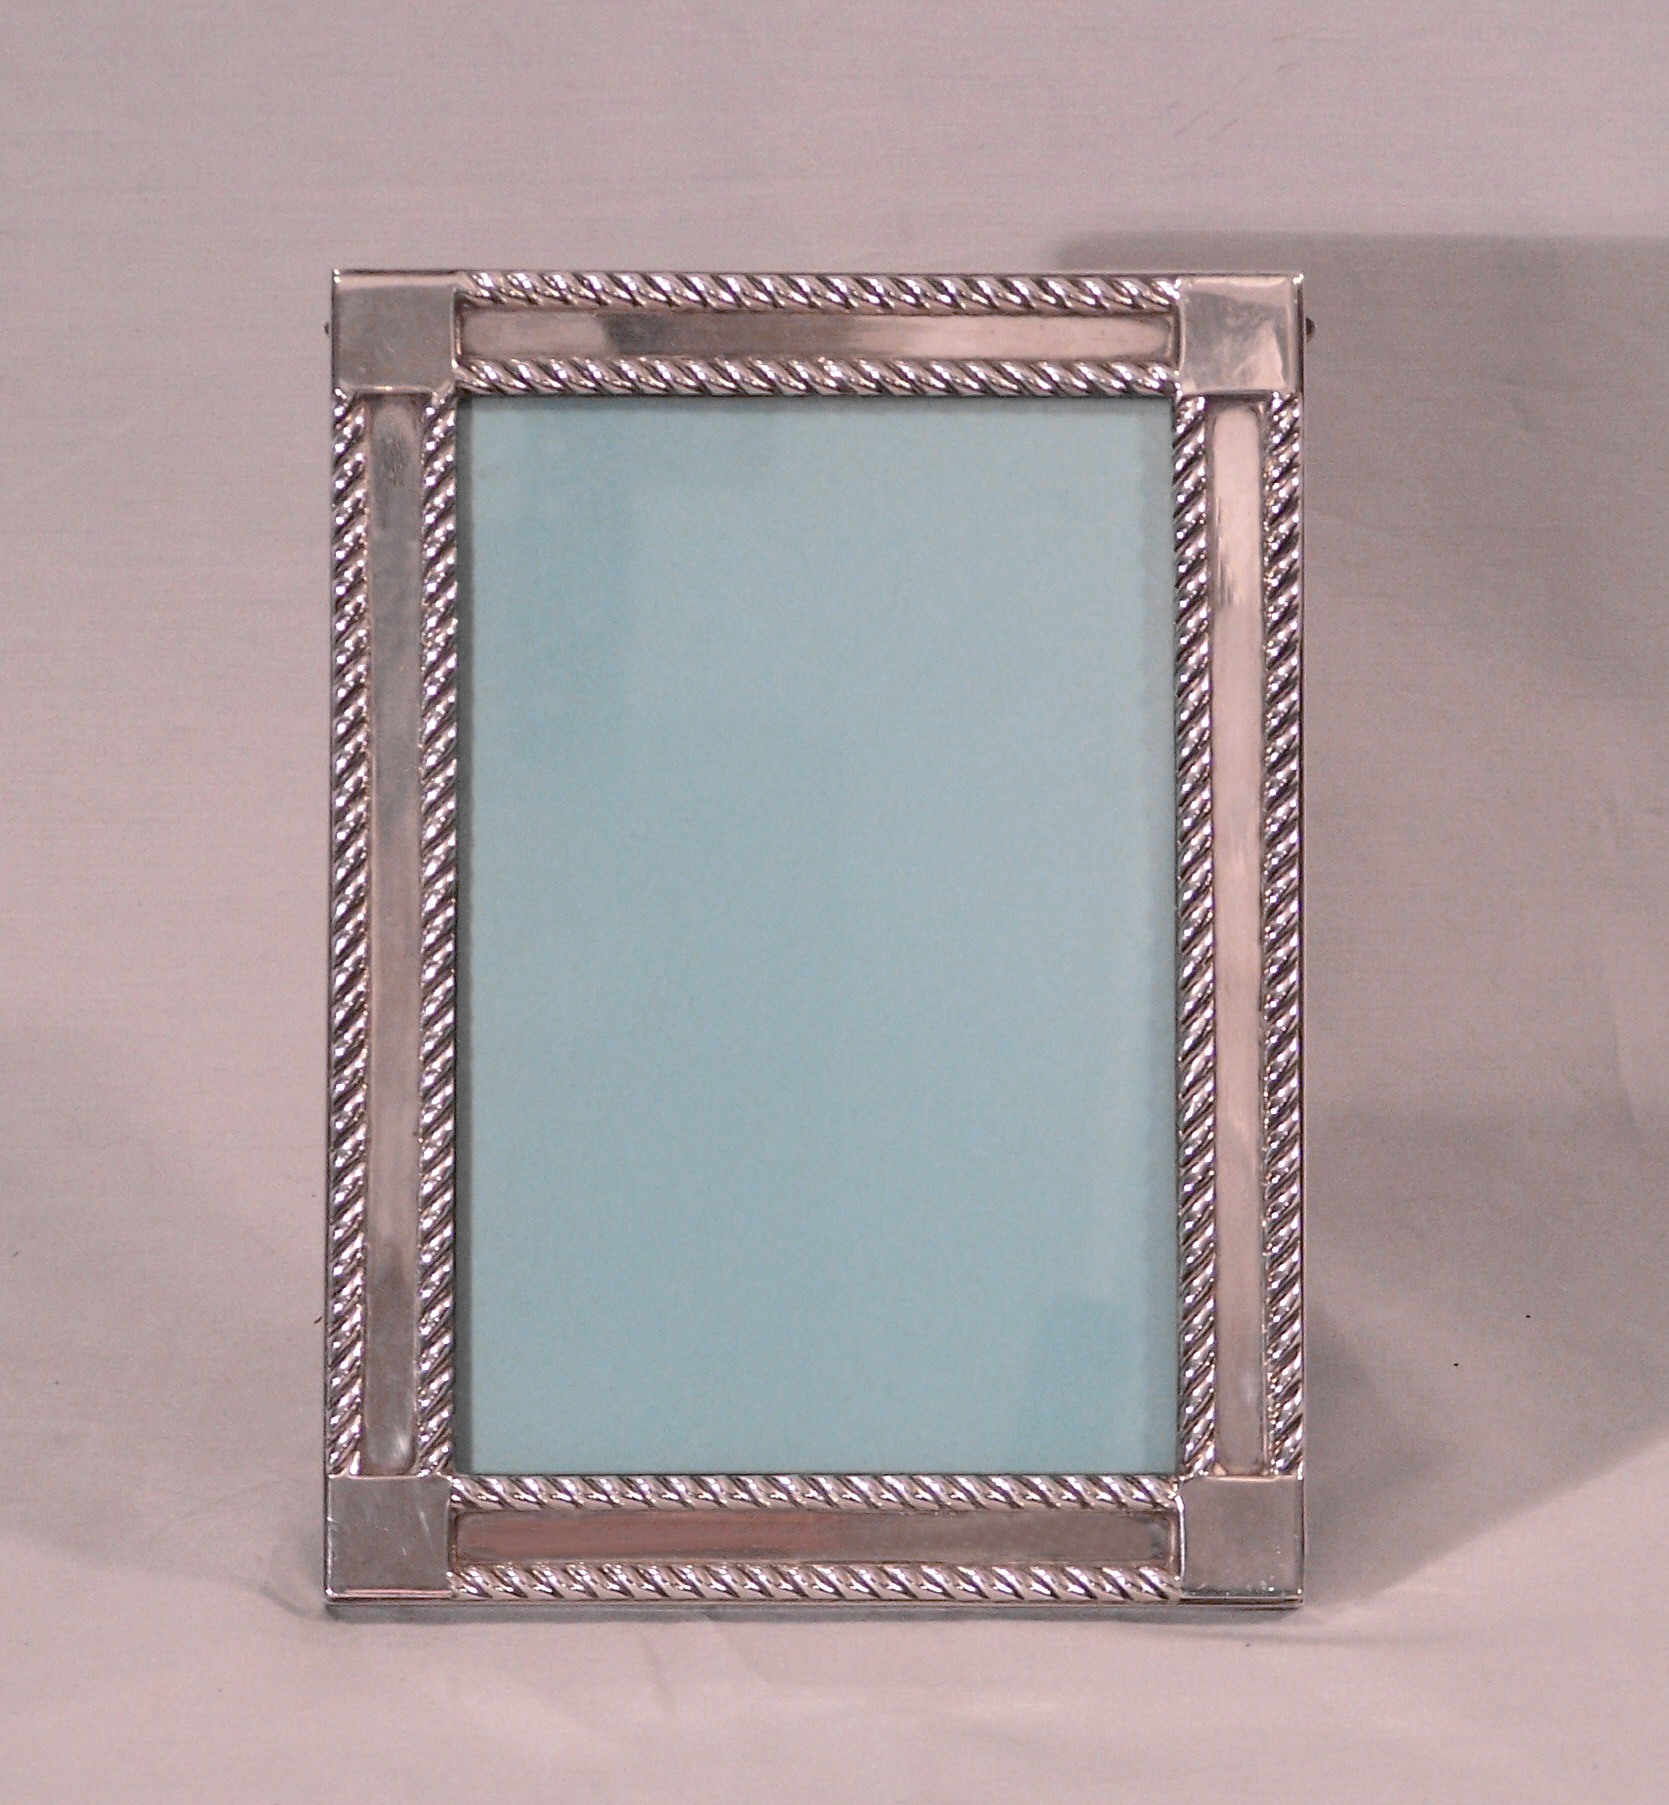 vintage tiffany and co makers 925 heavy sterling silver picture frame number 23886 measures 775 inches by 575 inches outside and 6 18 by 4 18 inches